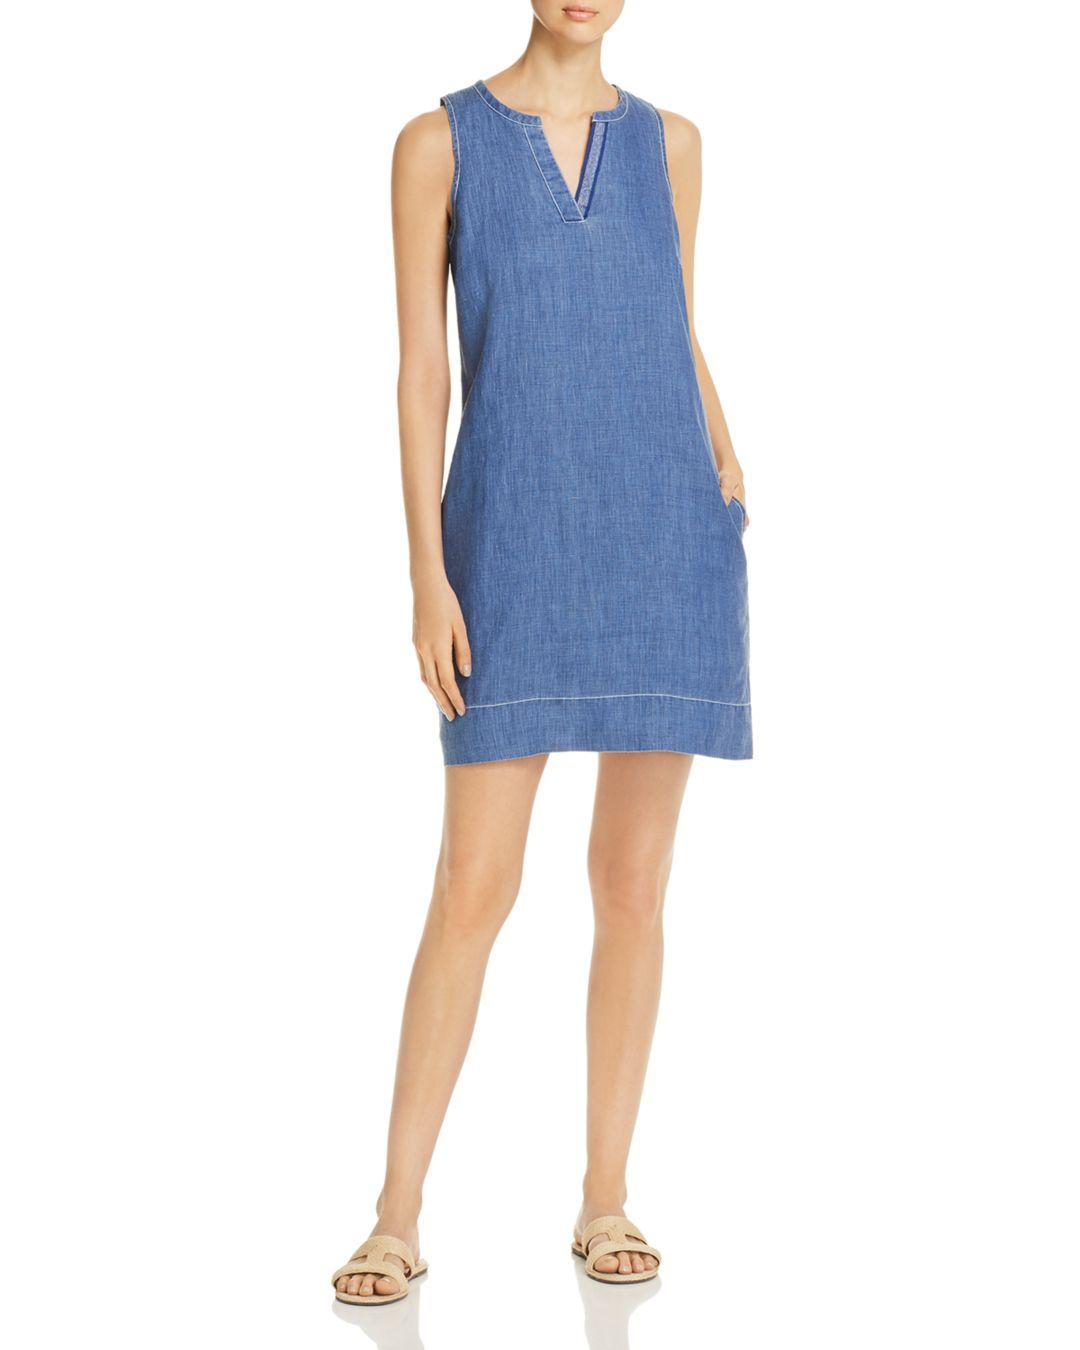 90bee03324 Tommy Bahama Seaglass Sleeveless Linen Shift Dress in Blue - Lyst